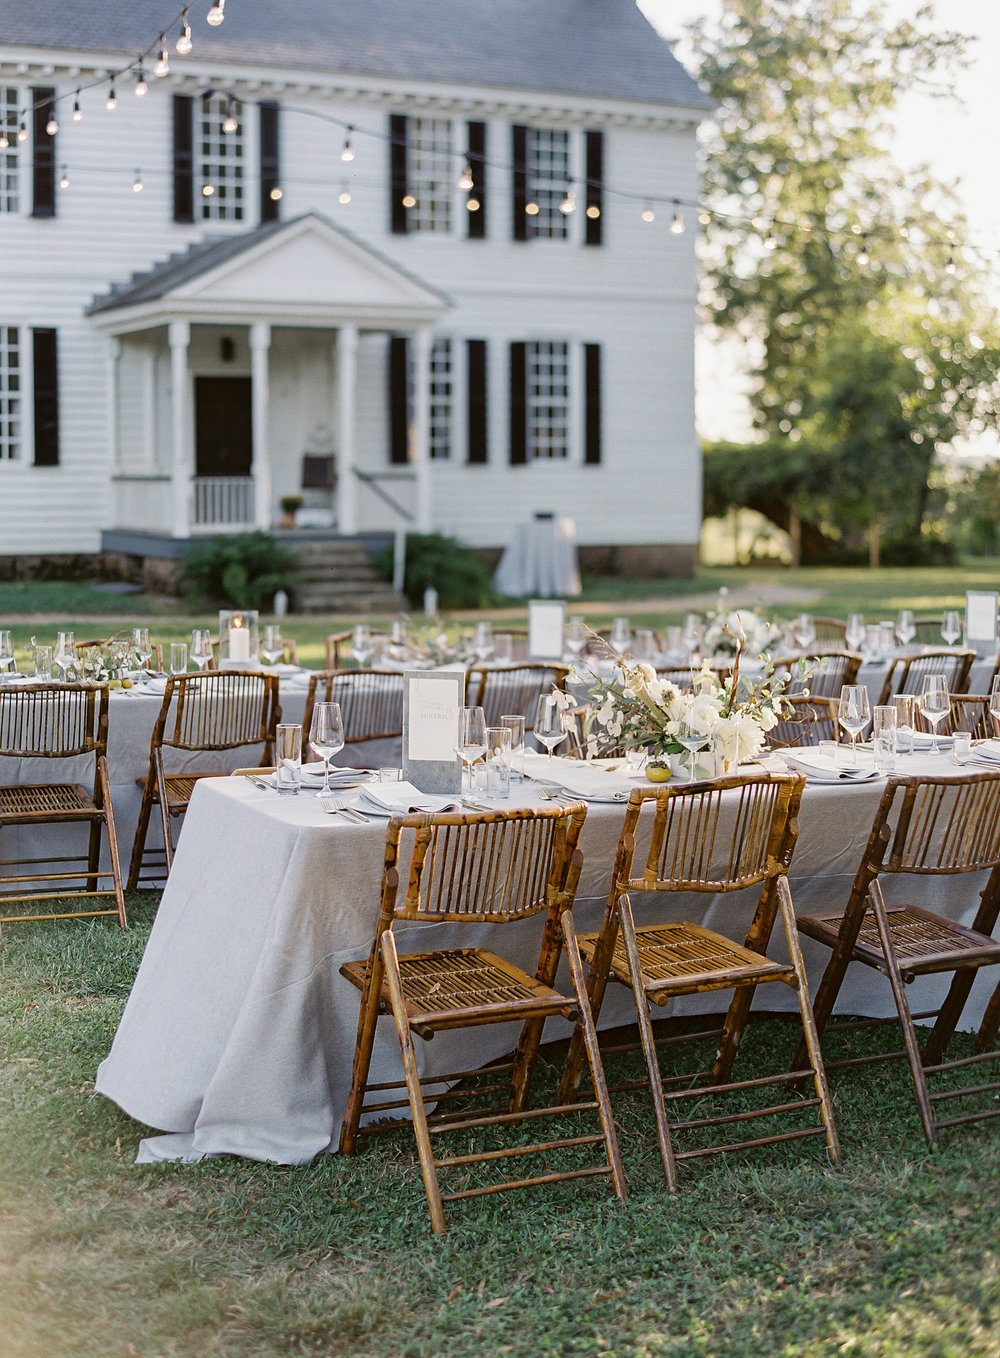 Tuckahoe Plantation Wedding_Virginia Florist Wild Green Yonder_107.jpg